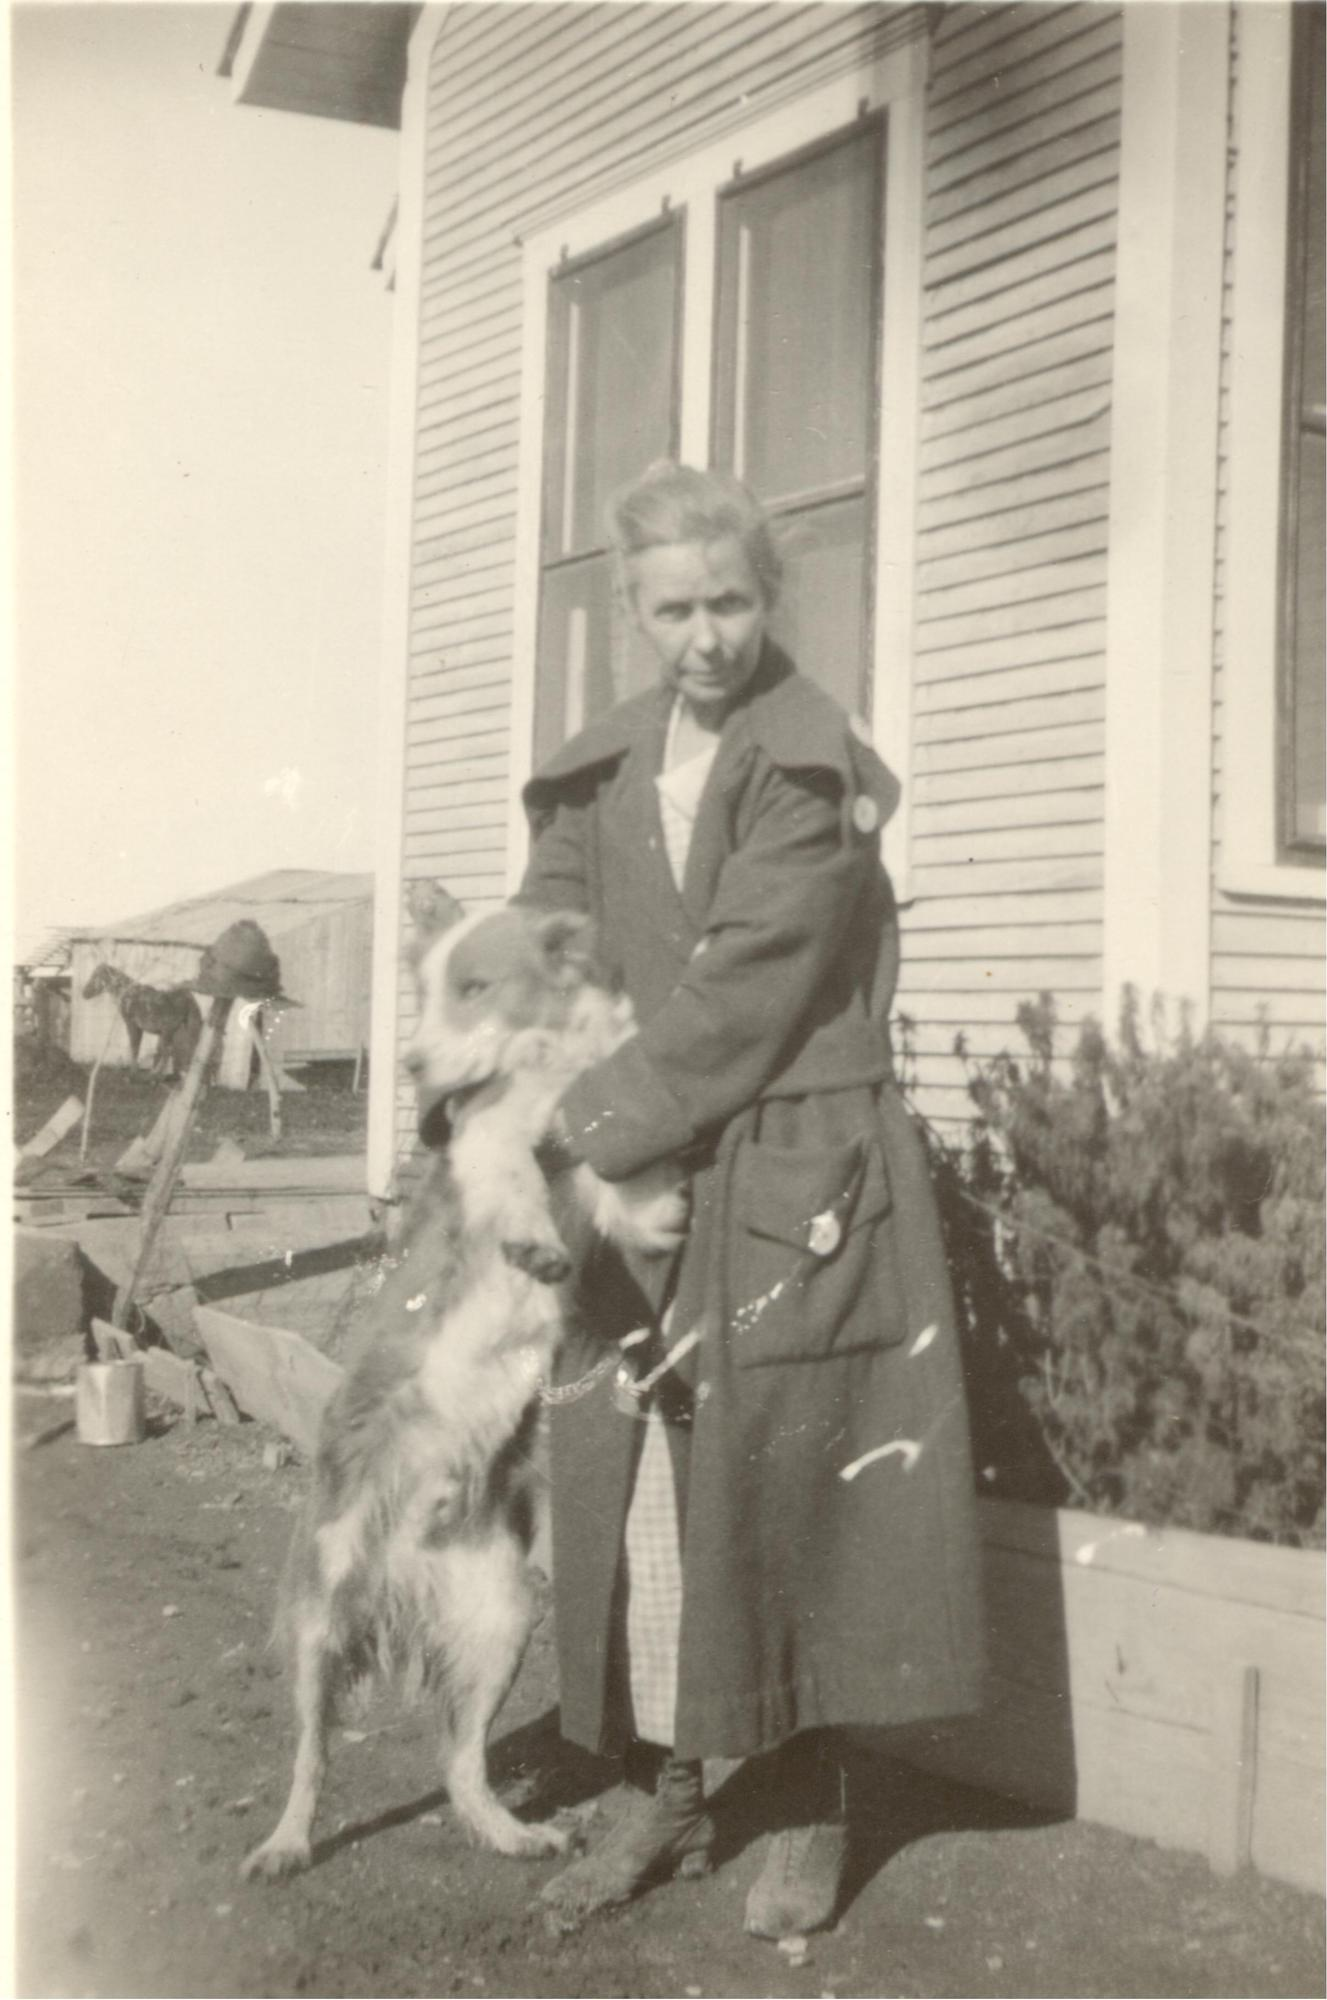 Caroline Henderson with her dog Jack, late 1930s